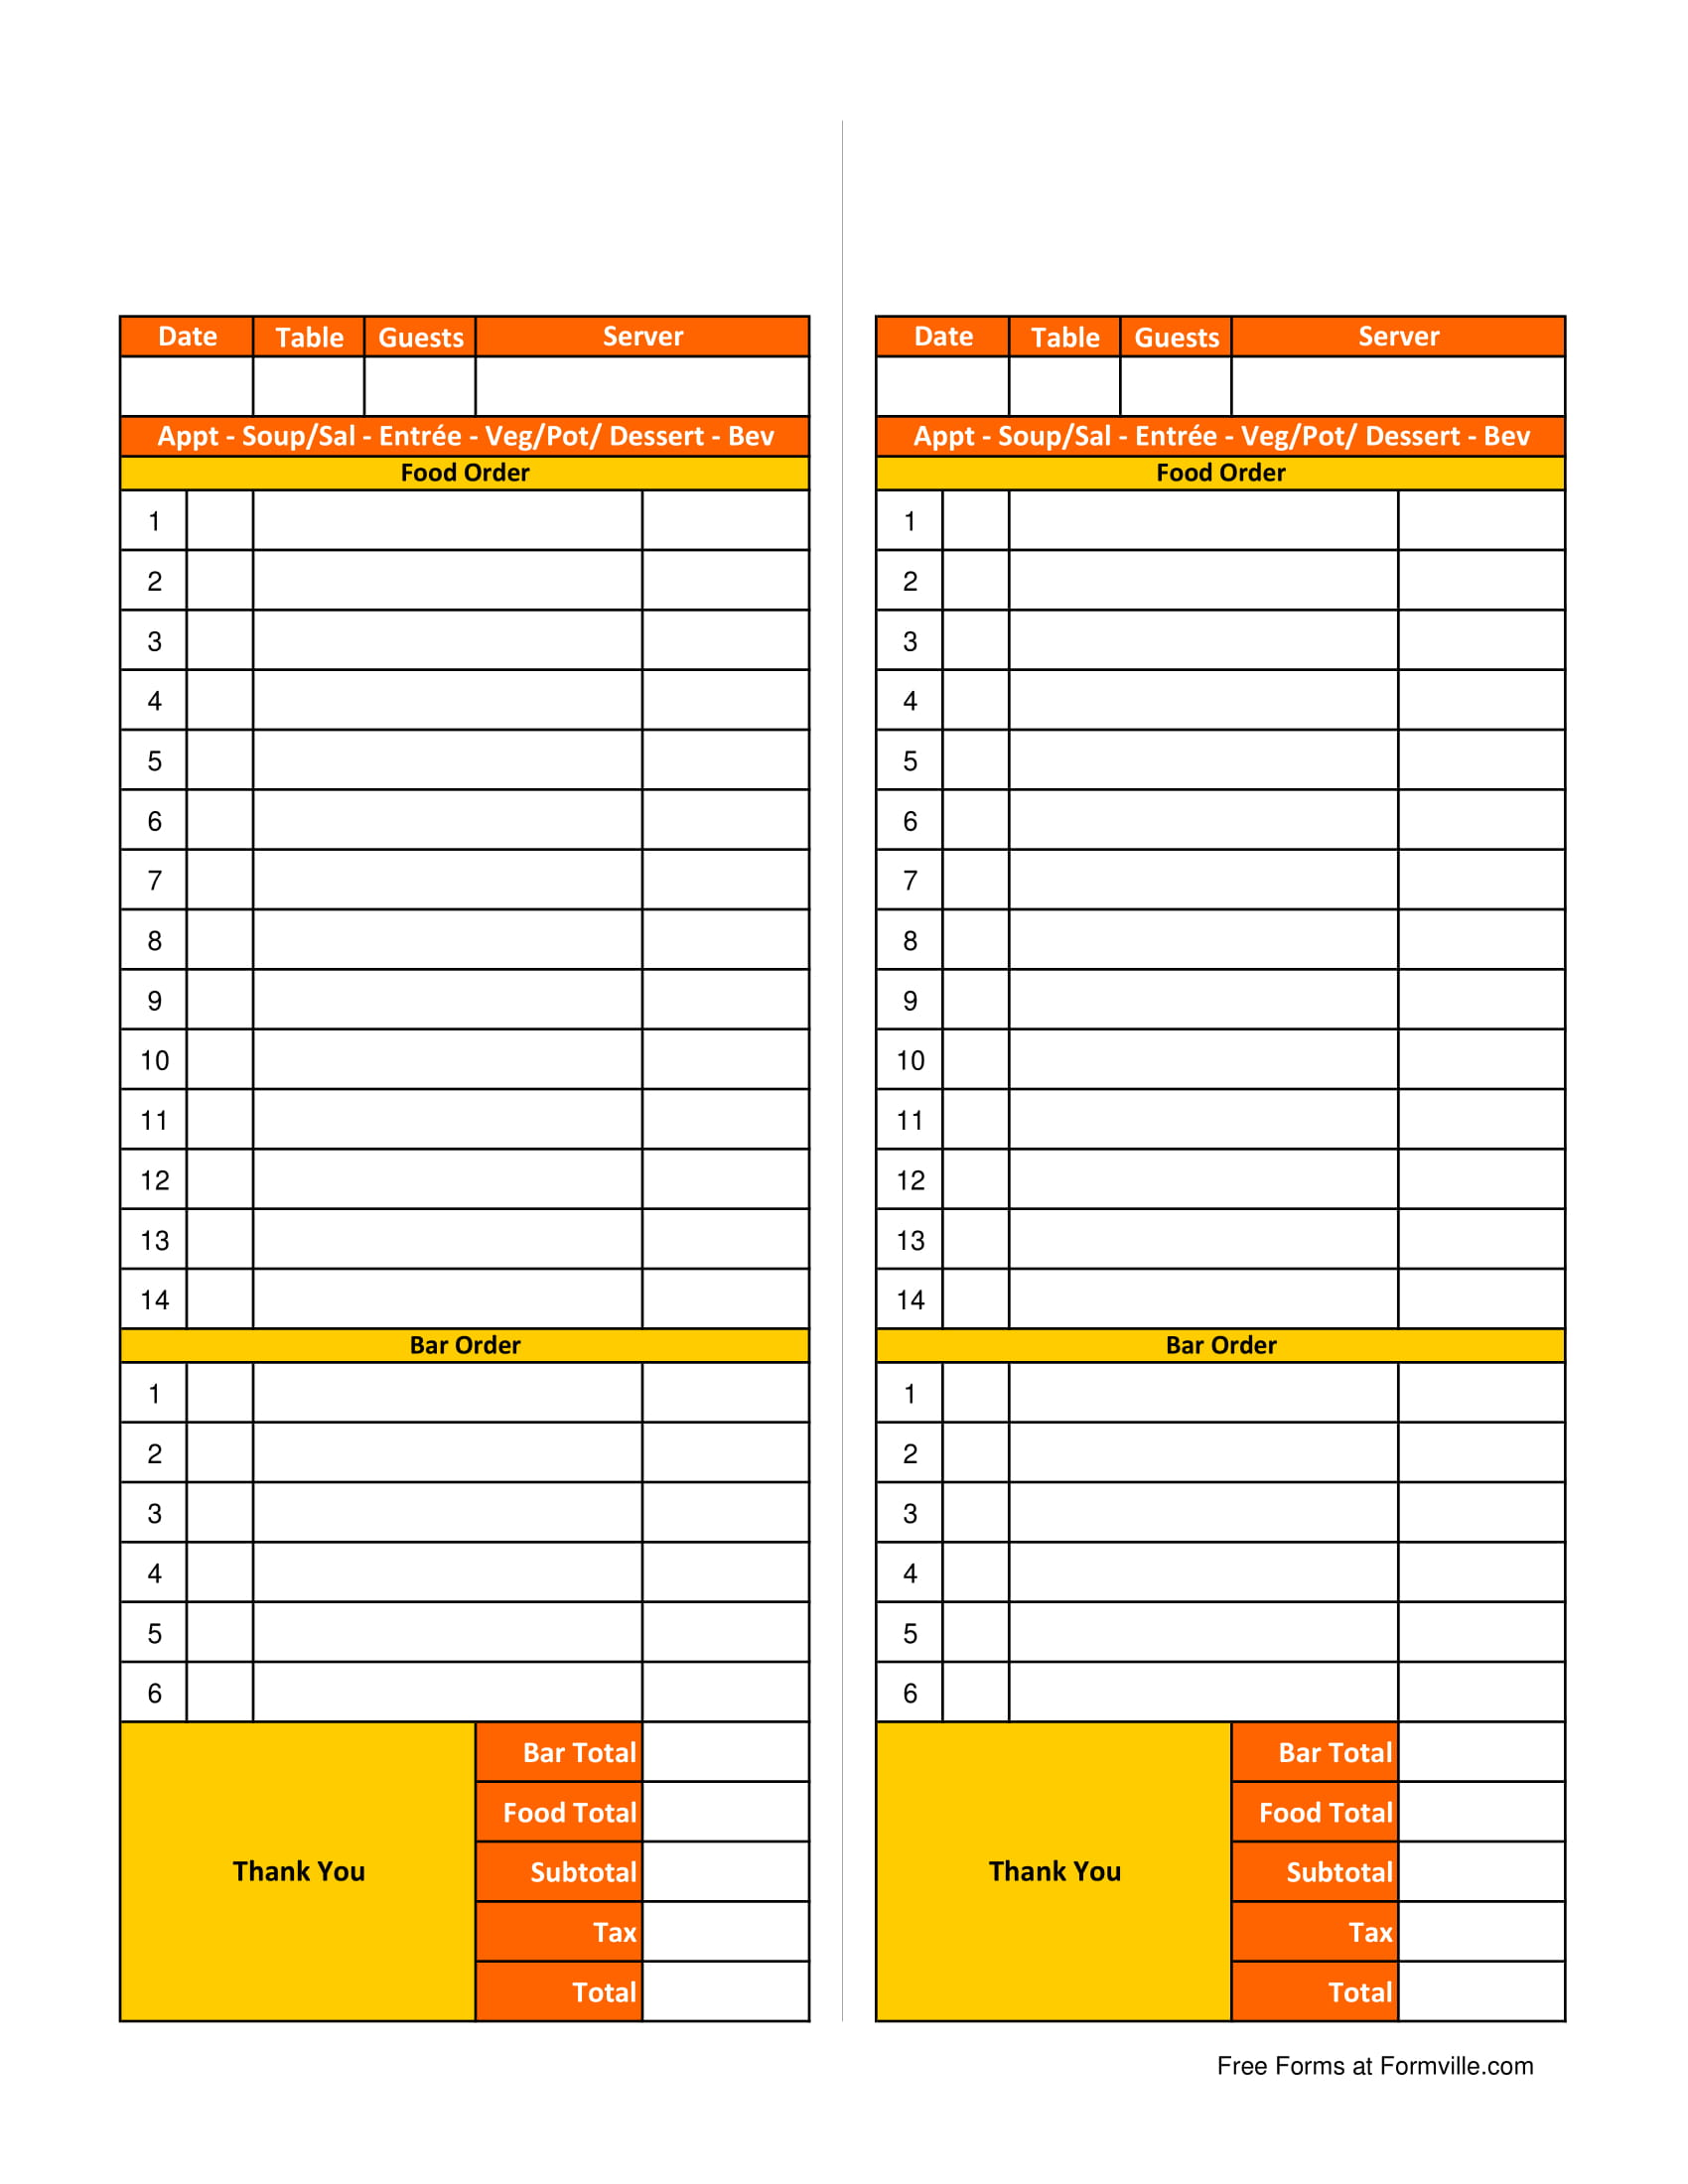 Amazing Waitress Order Pad Template Adornment - Resume Ideas ... on table tent reserved sign template, restaurant order forms printable, restaurant gift certificates template, restaurant guest check template, restaurant food order form blank, food inventory order sheet template, restaurant specials template, restaurant order tickets, restaurant sidework sheets, restaurant order ticketholder, restaurant subway fast food, restaurant menu design, restaurant brochure template, restaurant order dockets, restaurant order guide, restaurant order form pdf, restaurant line check template, restaurant order form print out, create a beo template, sample banquet event order template,